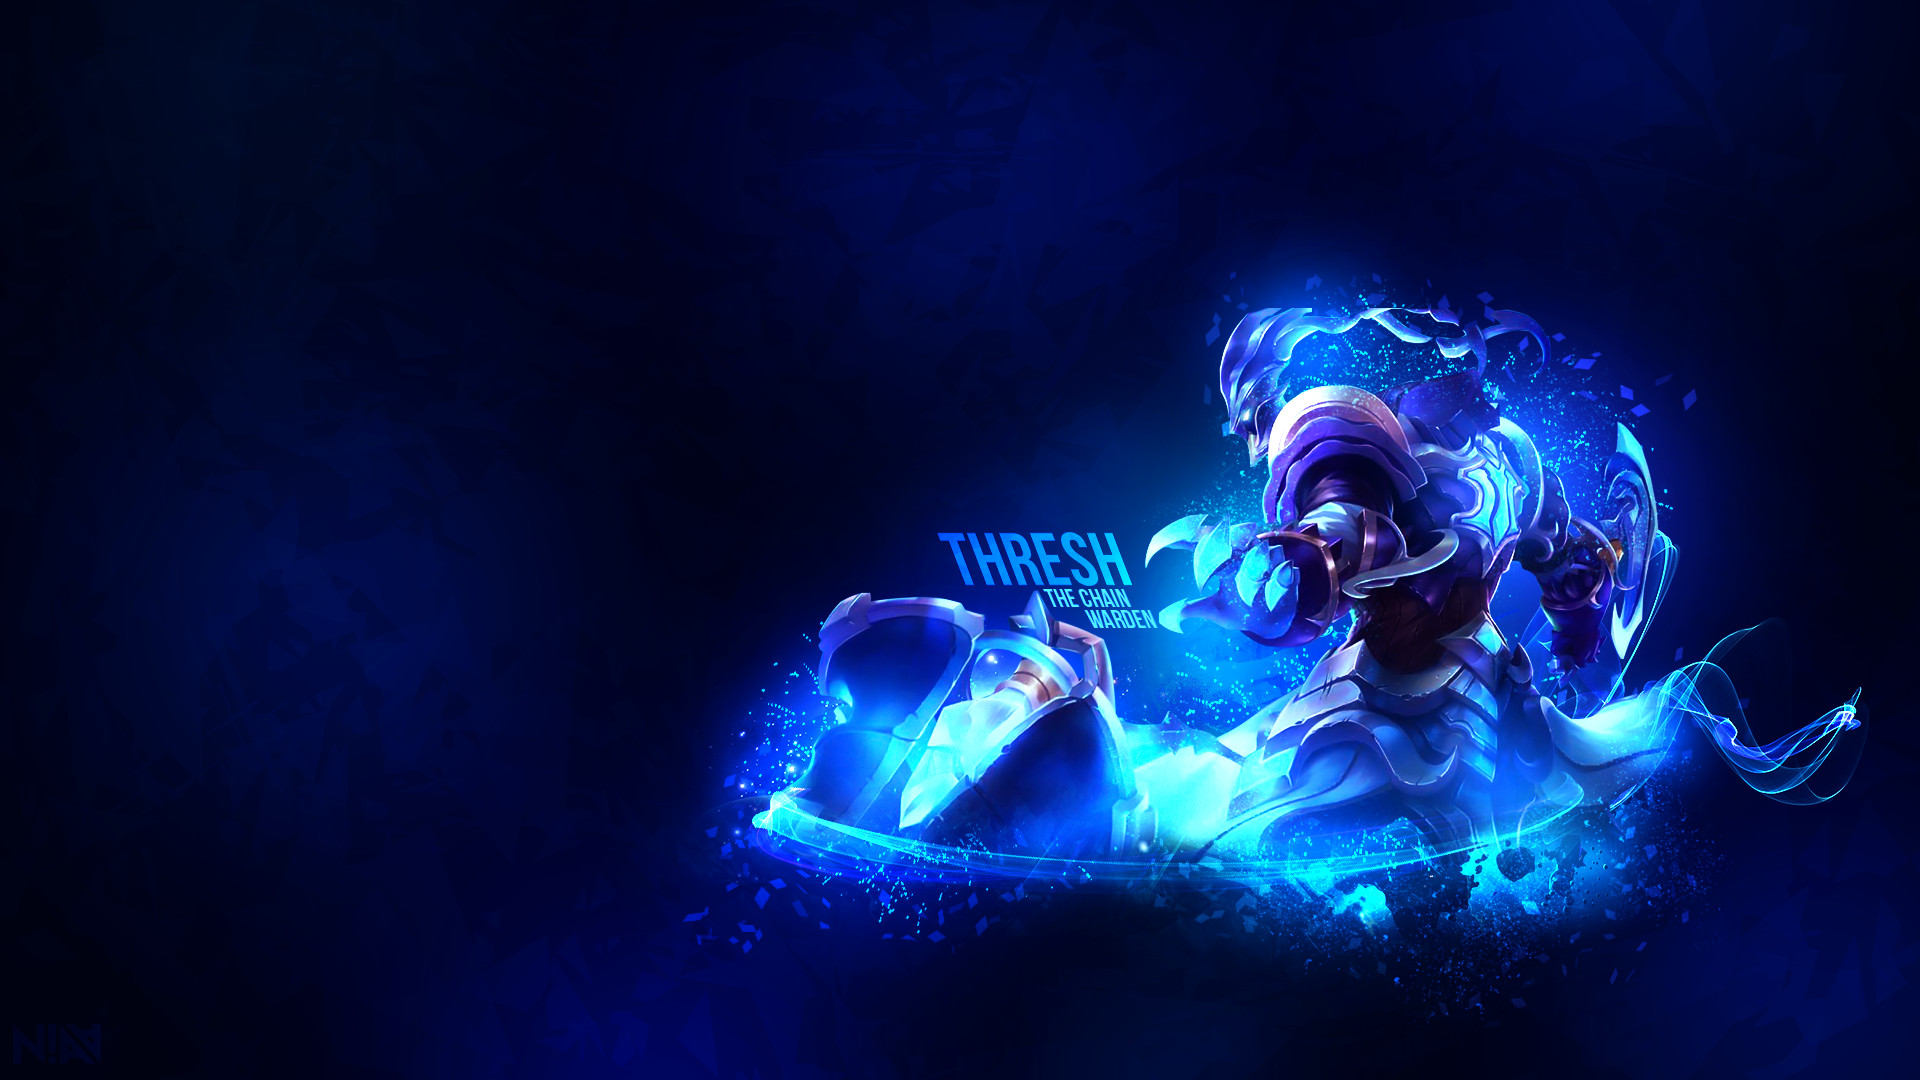 1920x1080 Championship Thresh - Wallpaper  by AliceeMad Championship Thresh  - Wallpaper  by AliceeMad